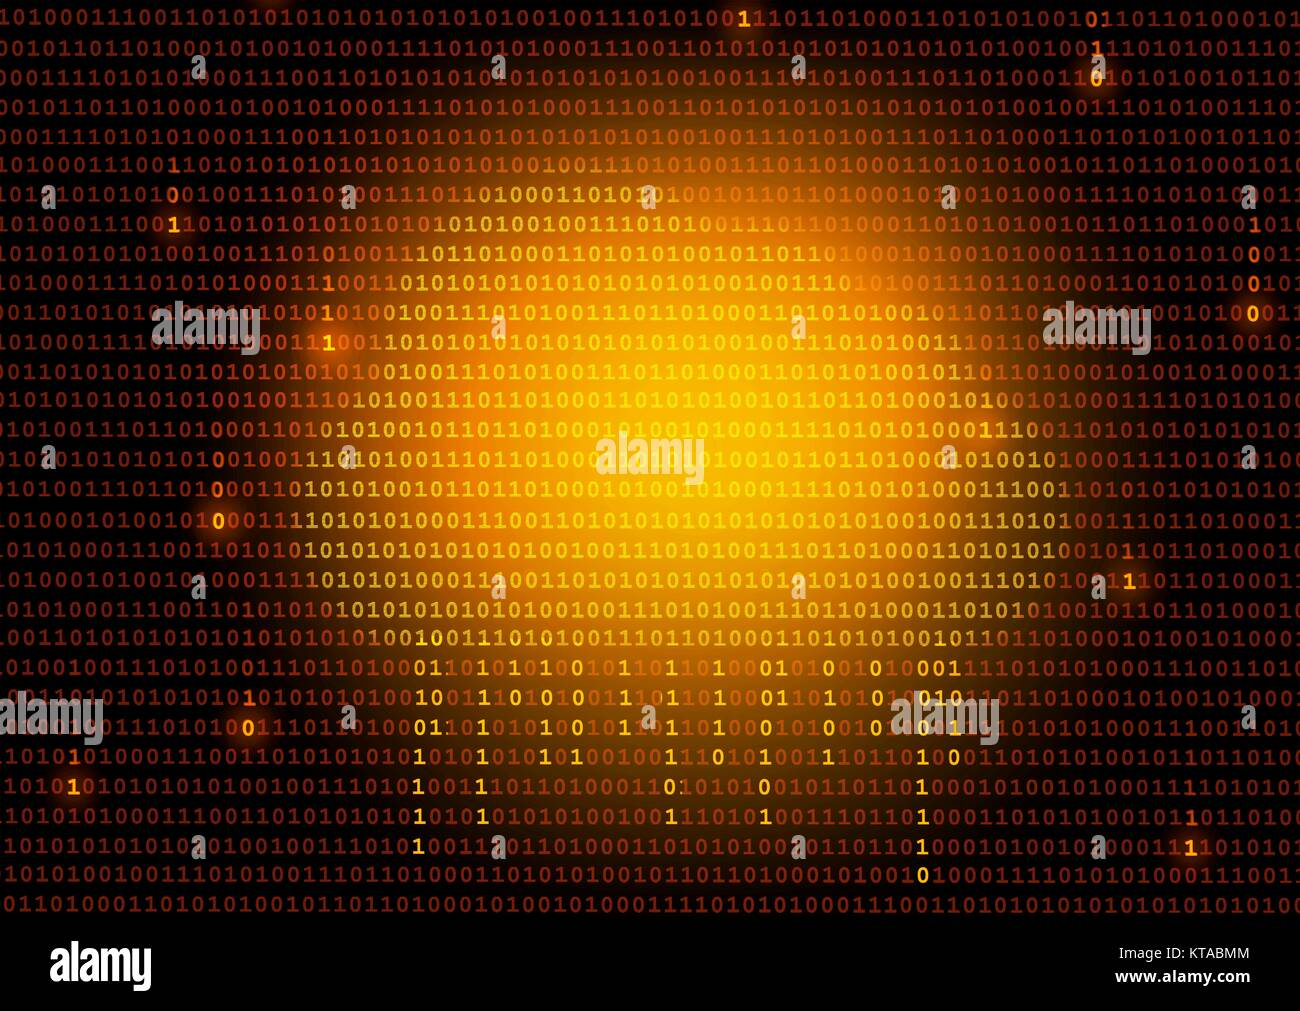 Cloud computing, conceptual illustration. An image of a cloud on a background on ones and zeros (binary numbers) - Stock Image